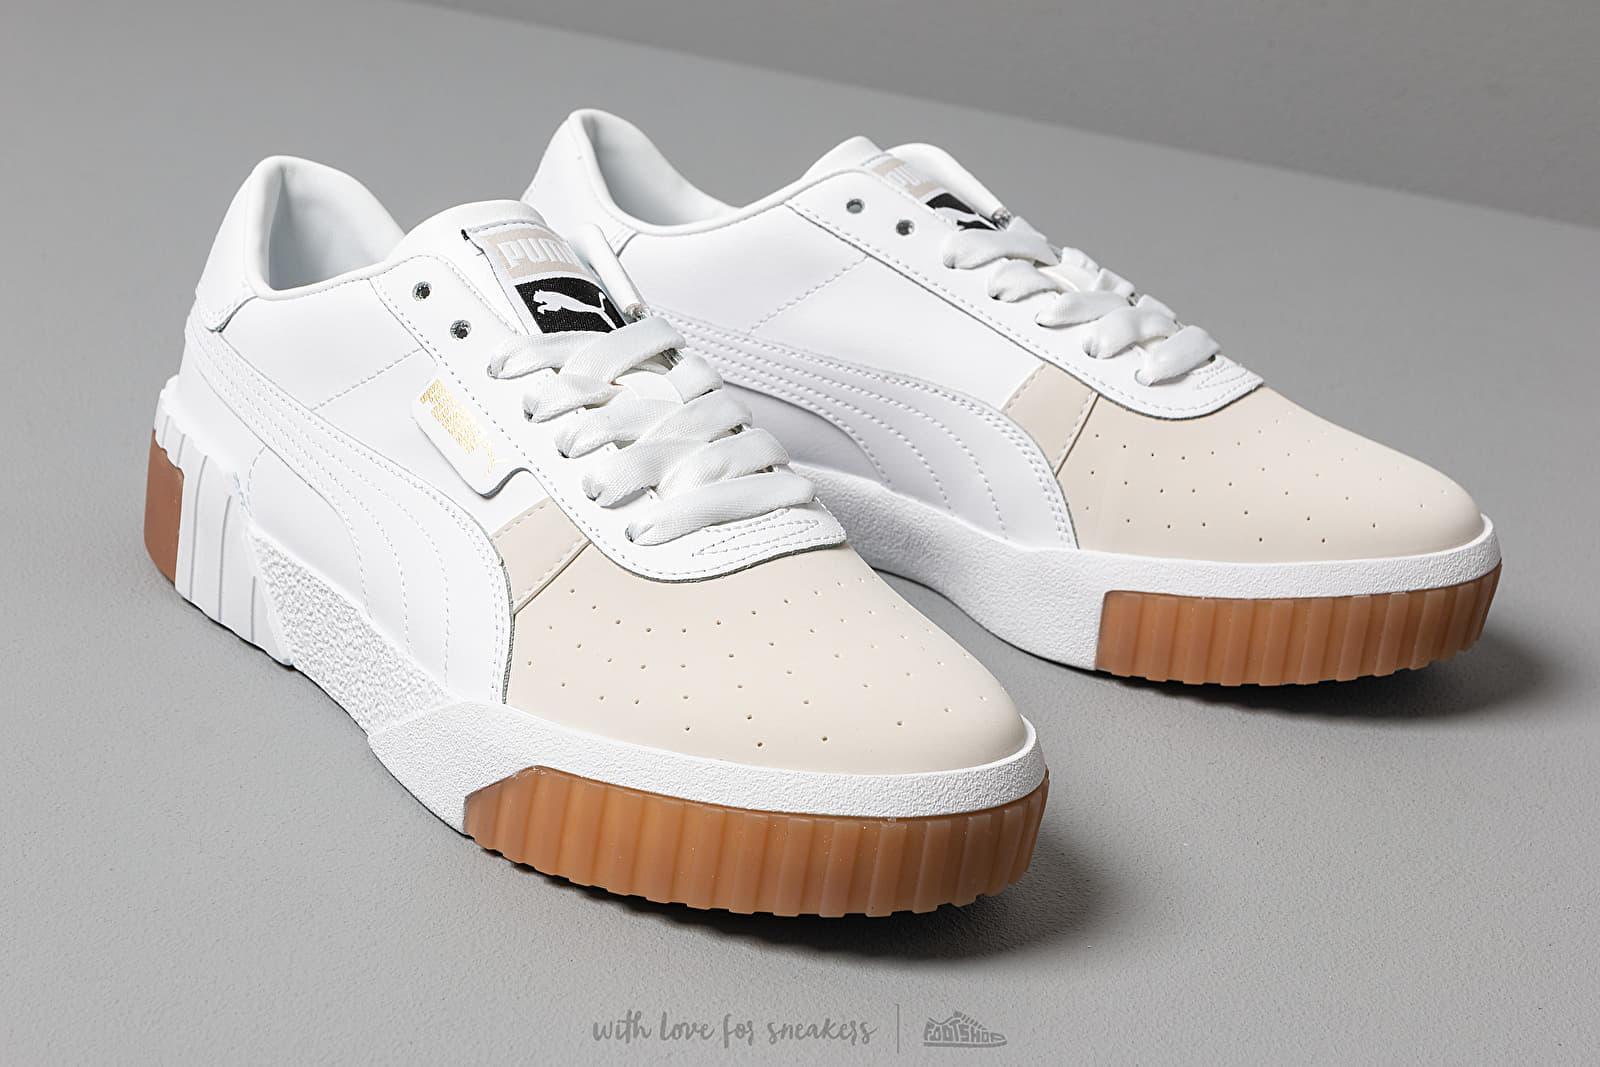 Exotic Cali Trainers With Gum Sole